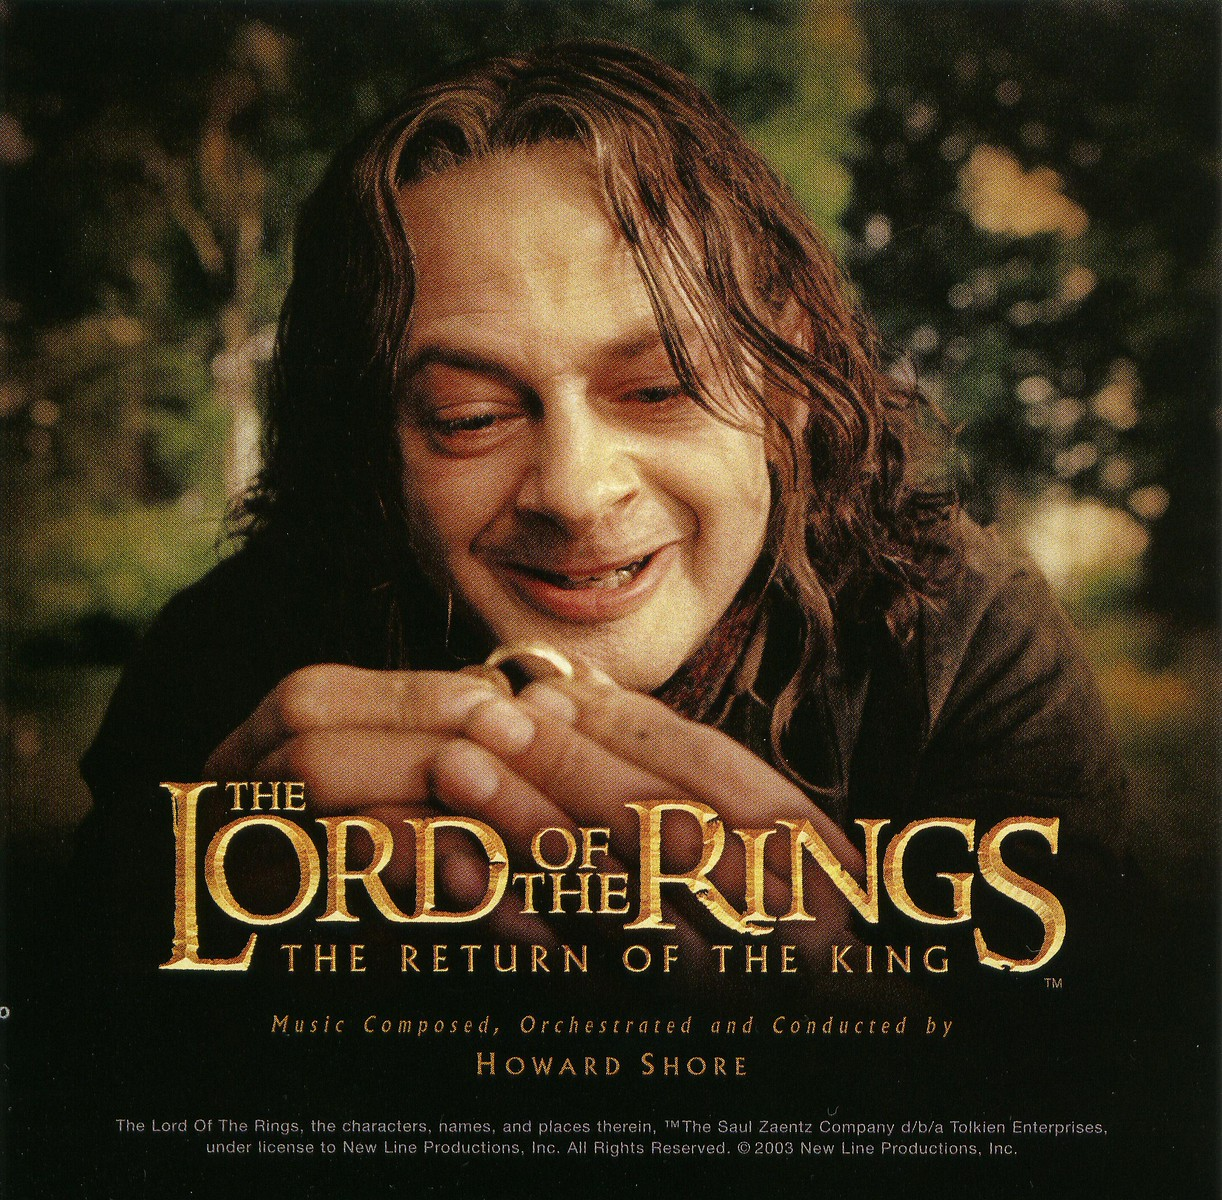 The Lord of the Rings Motion Picture Trilogy Soundtrack Picture